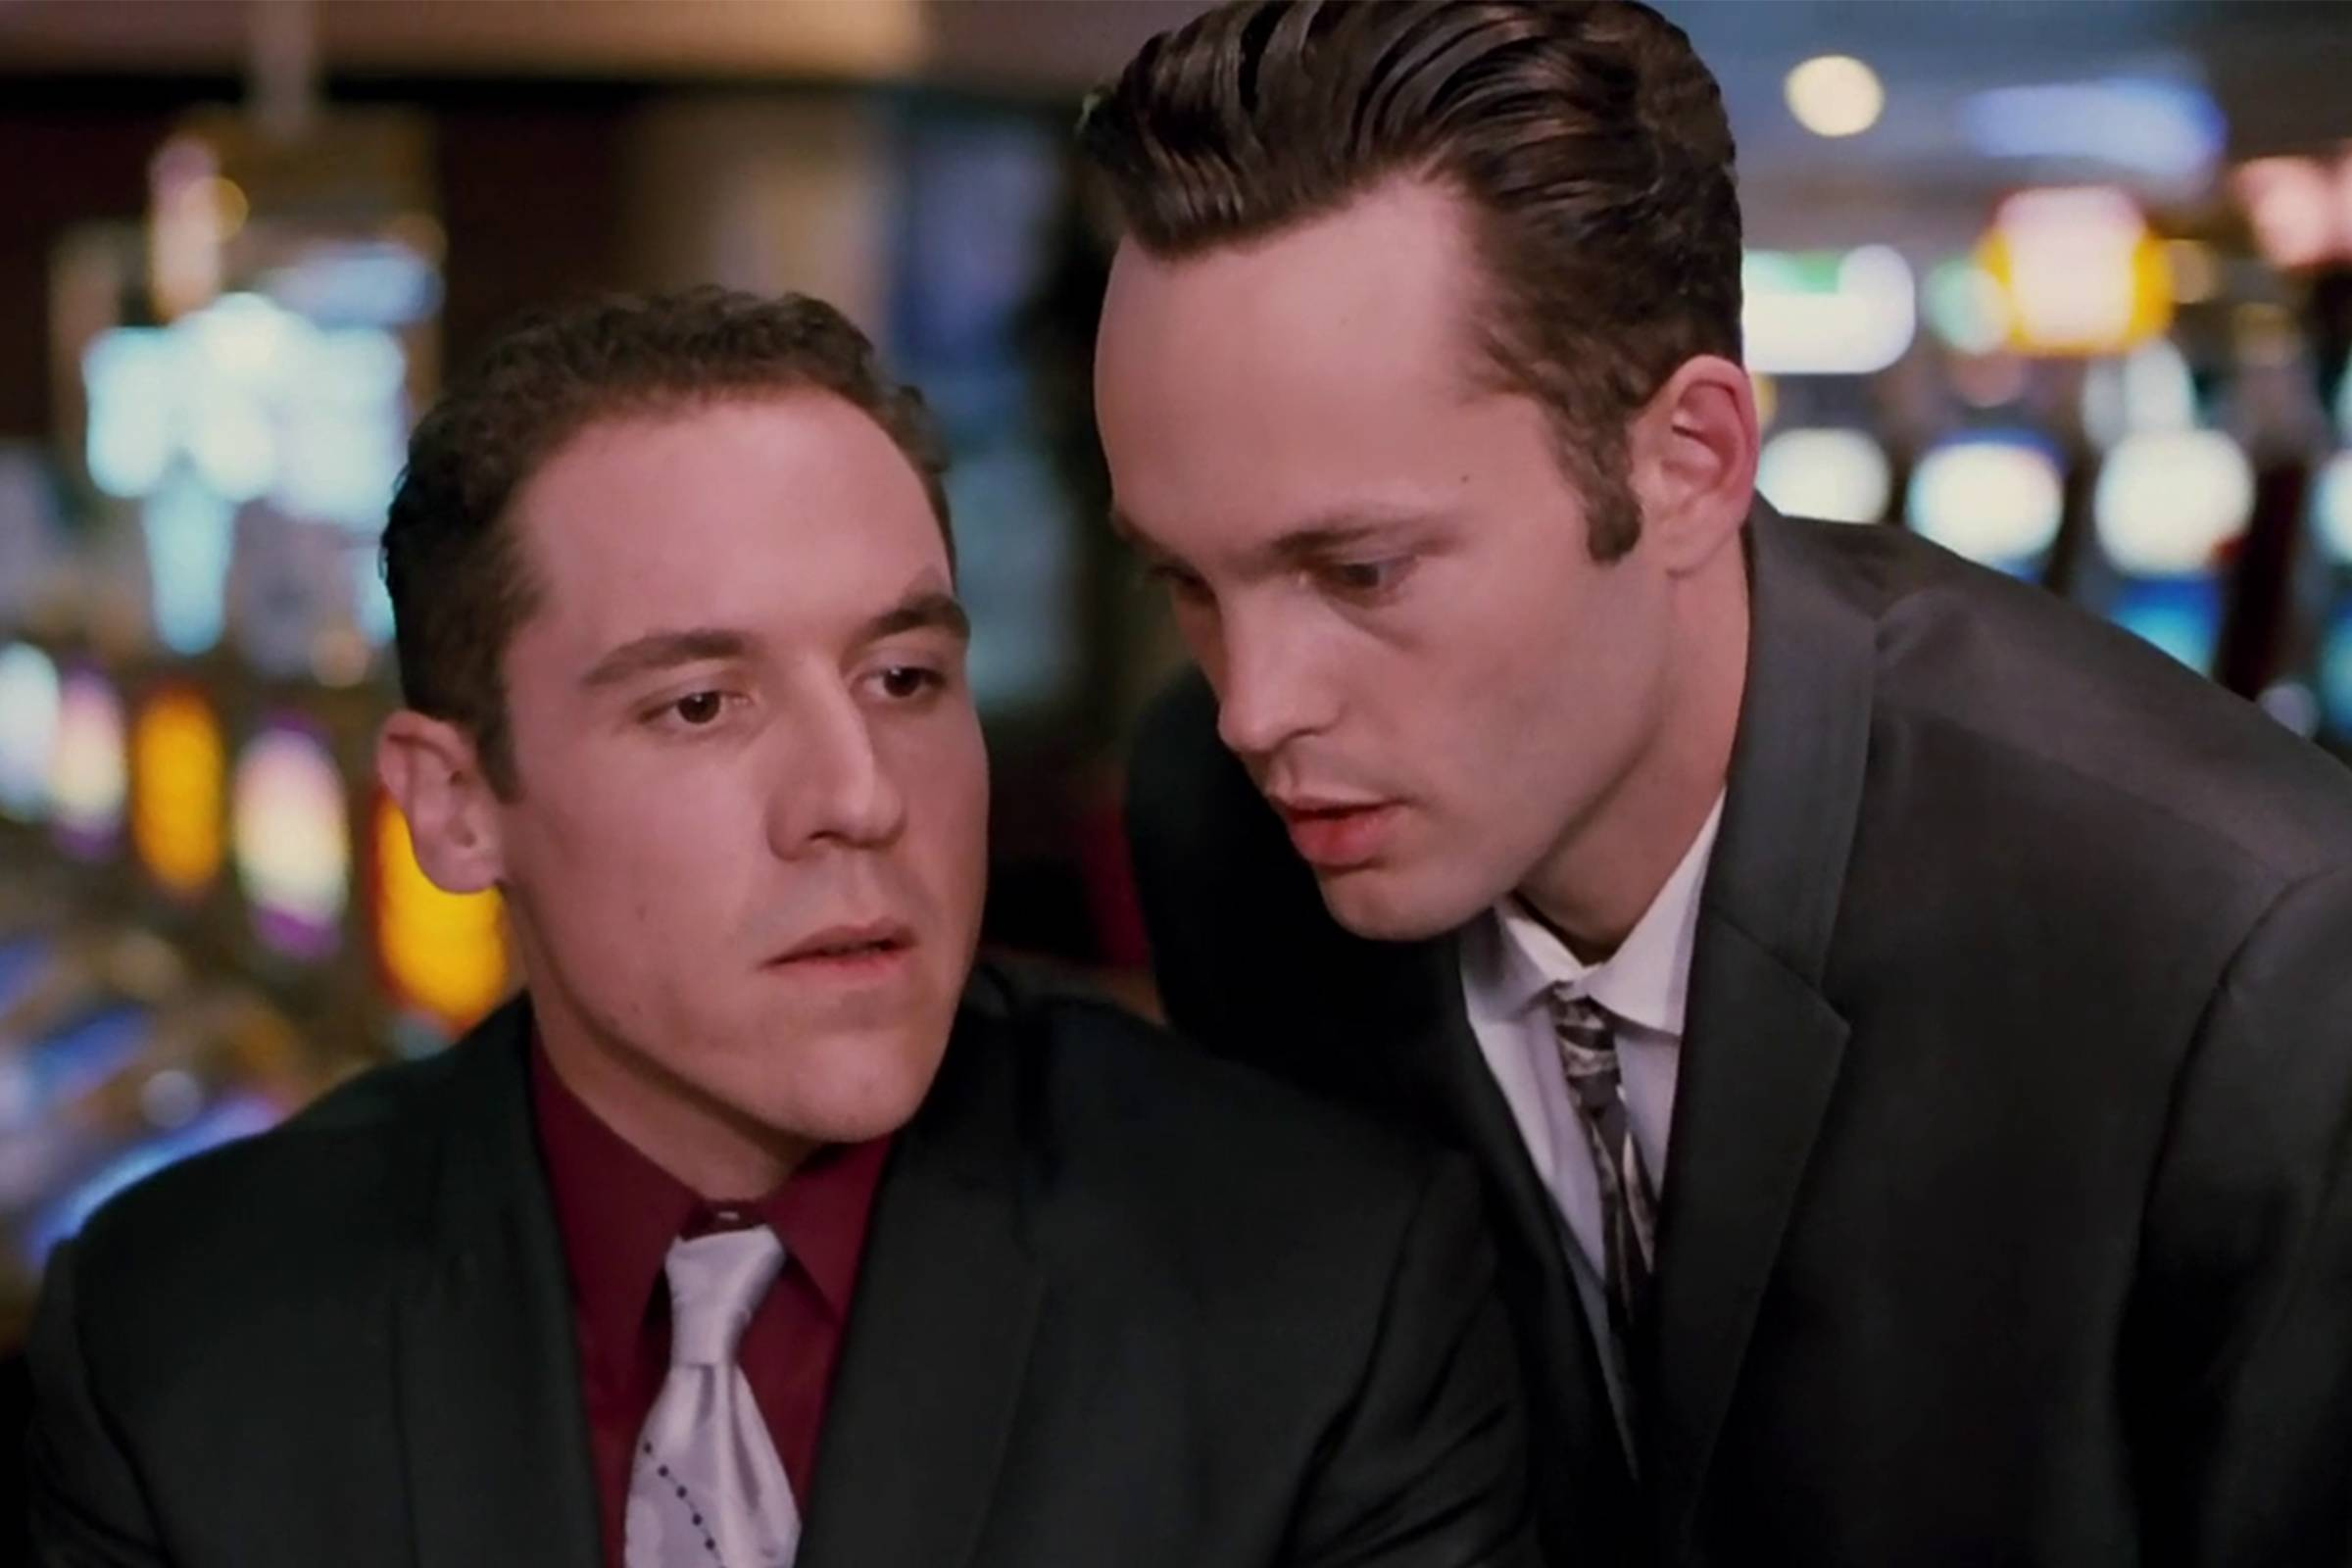 Mike (played by Jon Favreau) and Trent in Las Vegas pretending to be high-rollers